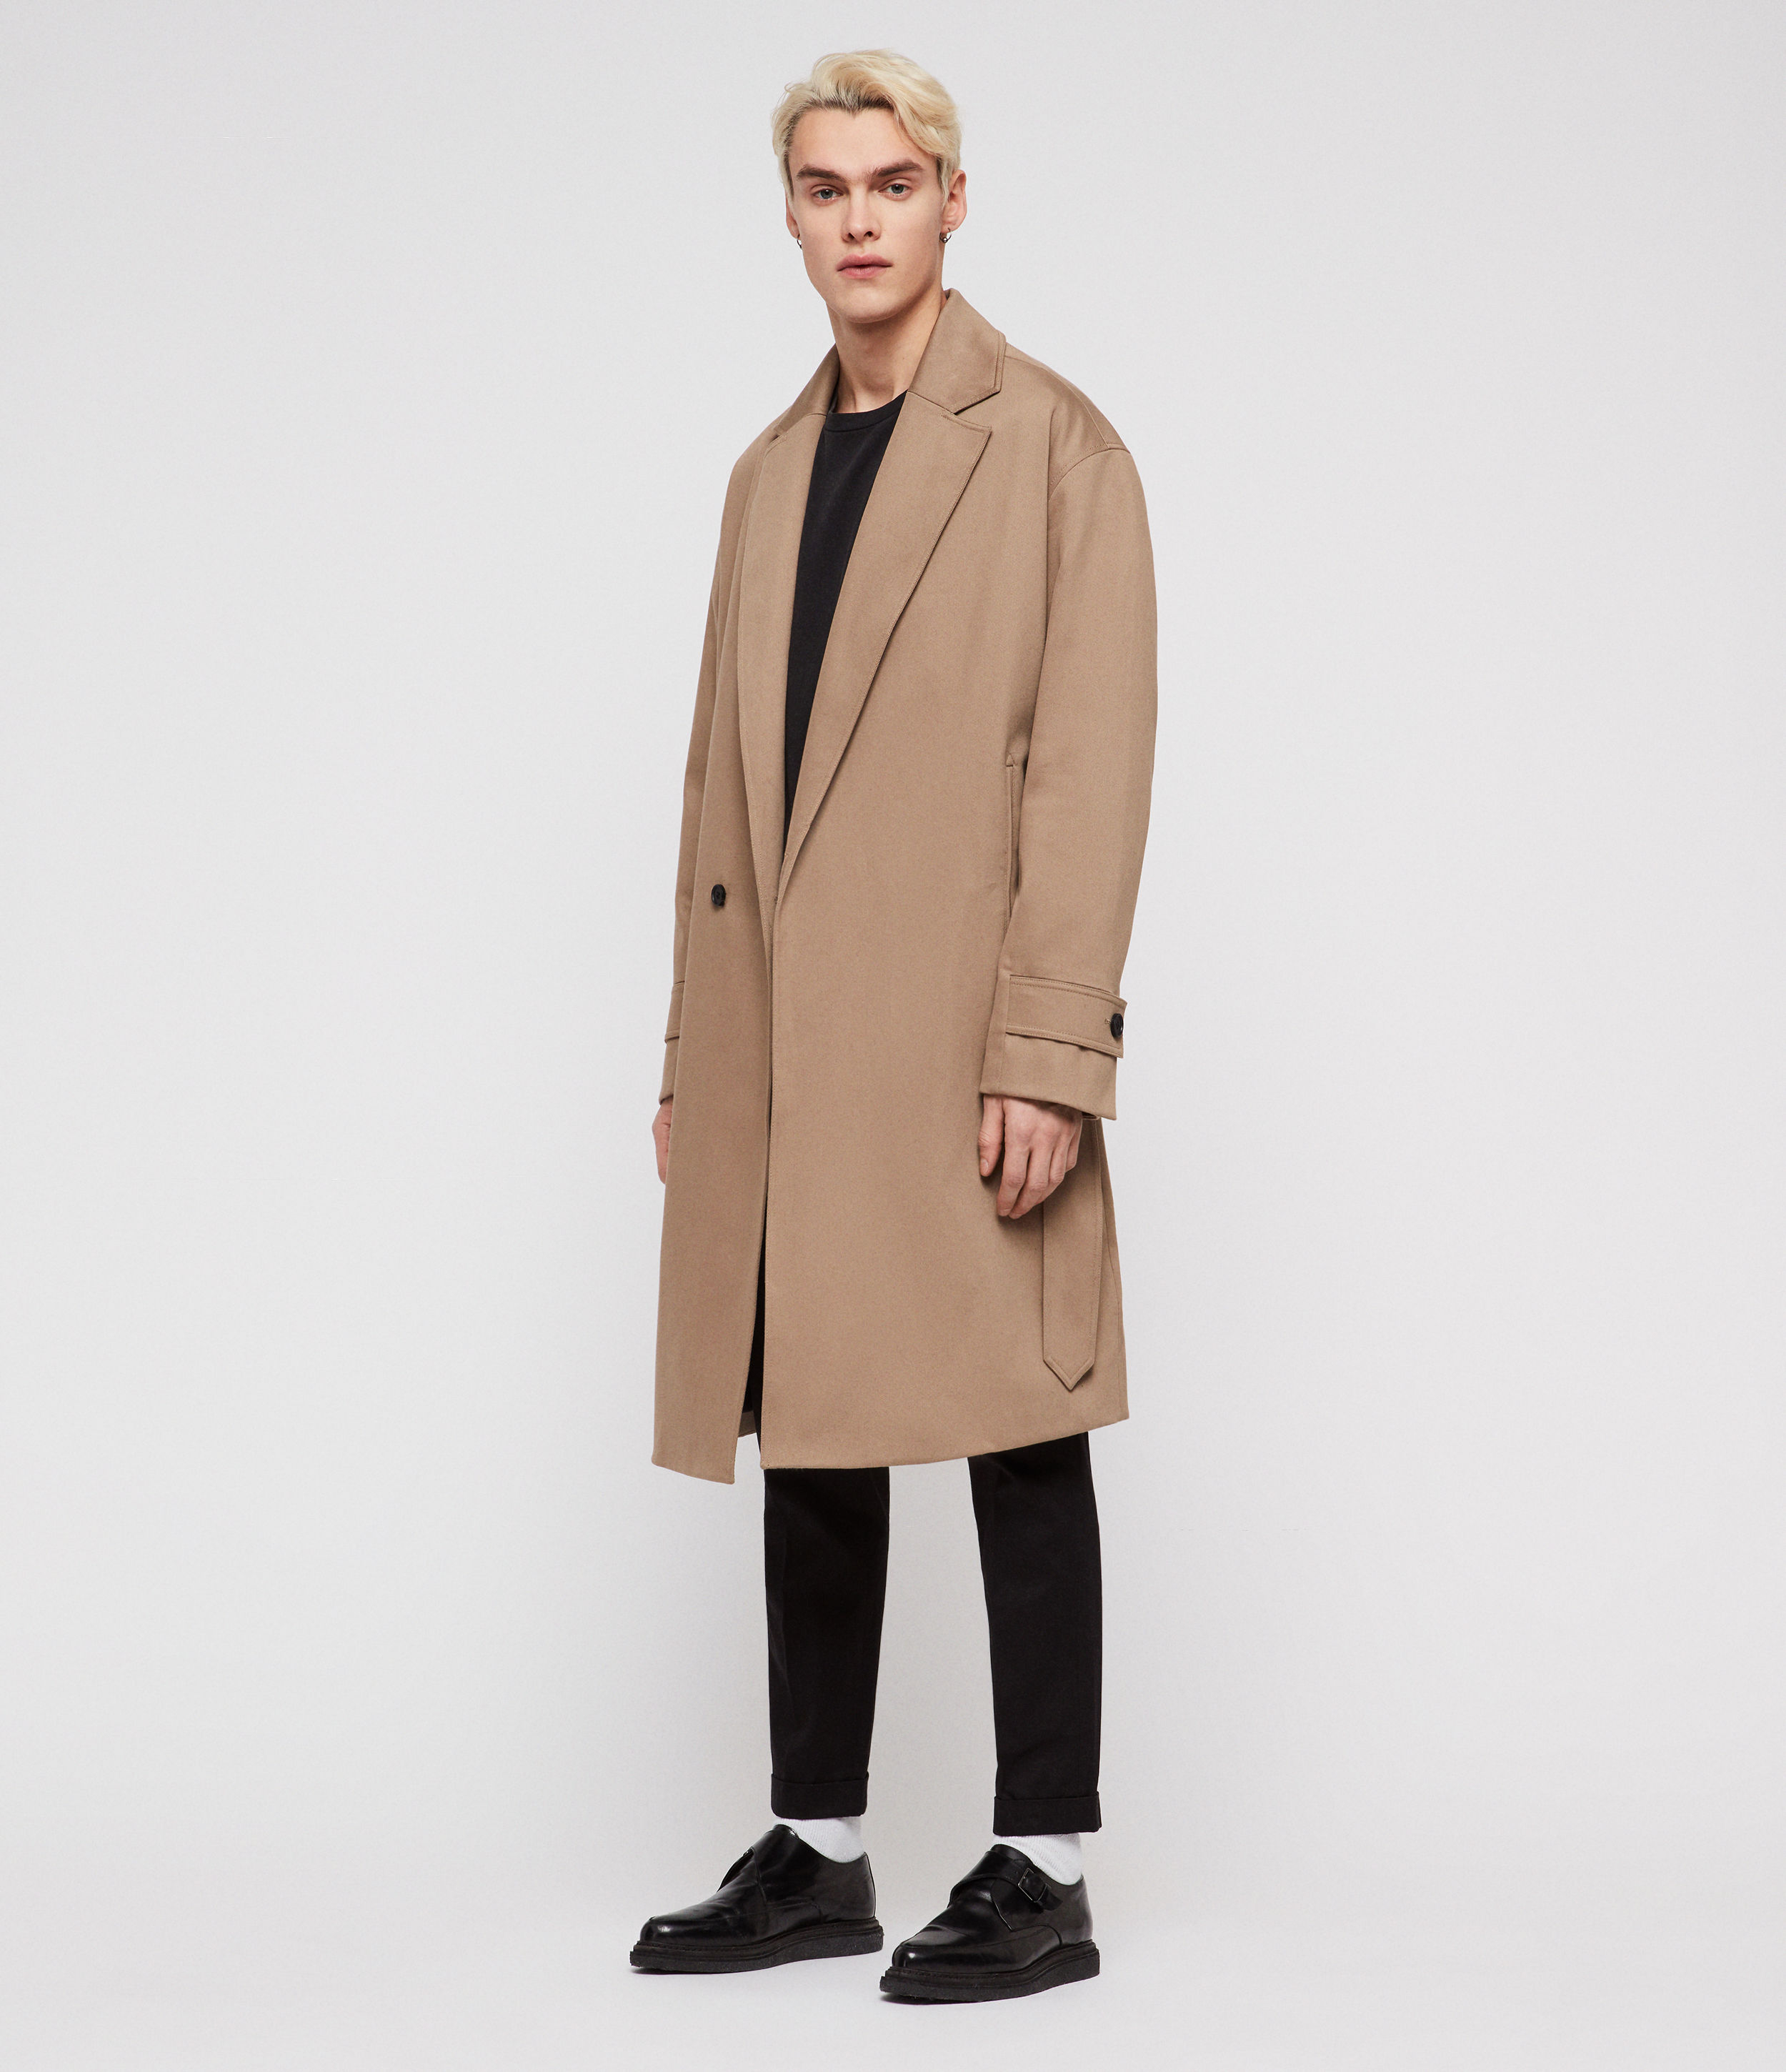 AllSaints Men's Cotton Fully Lined Reynolds Trench Coat, Brown, Size: M